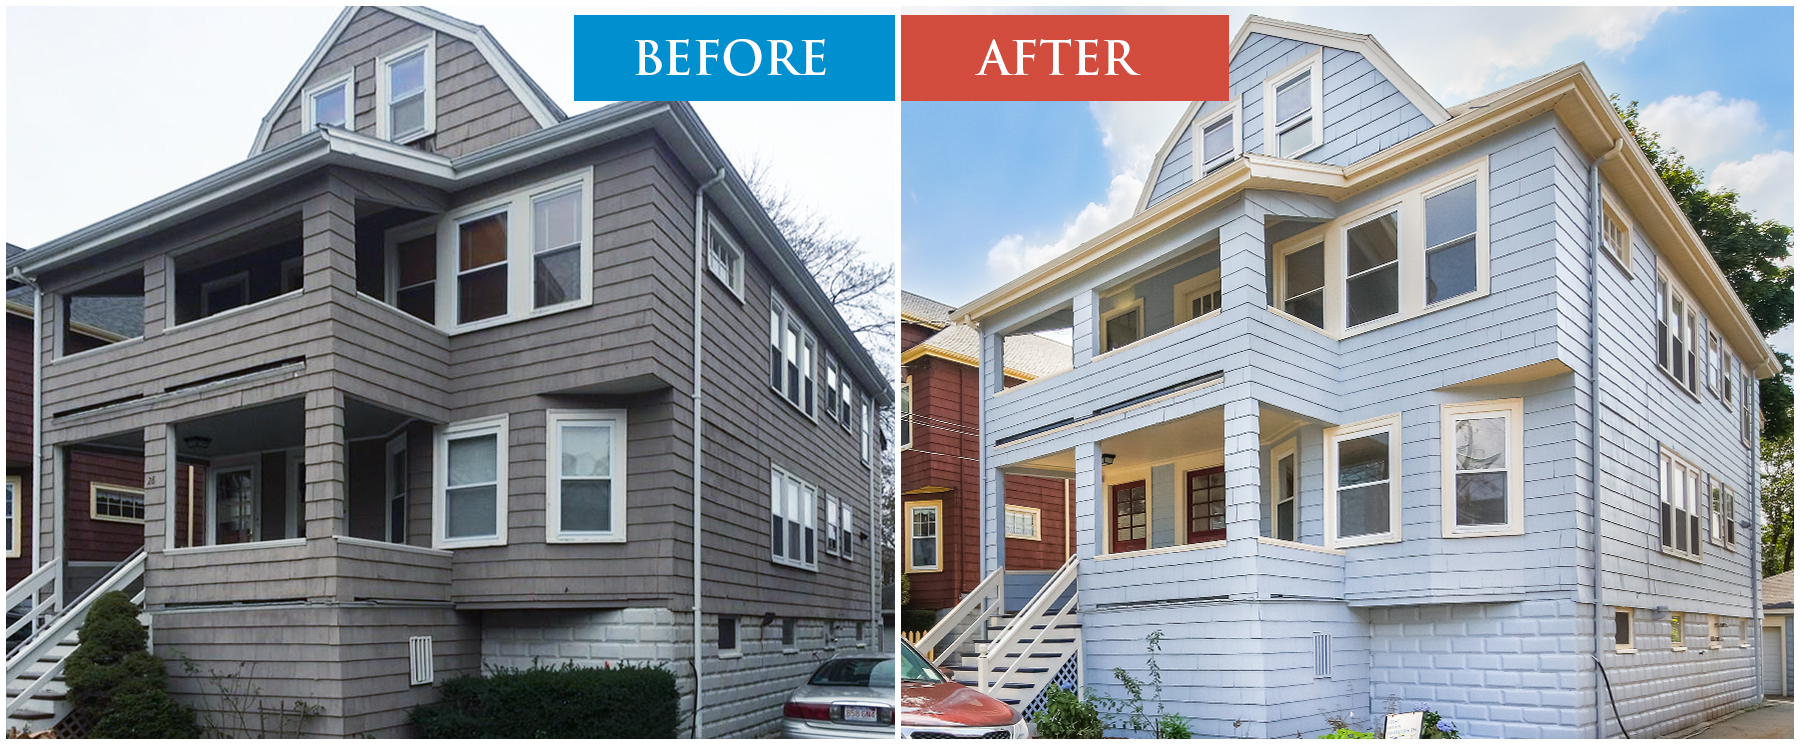 House Painted Before After